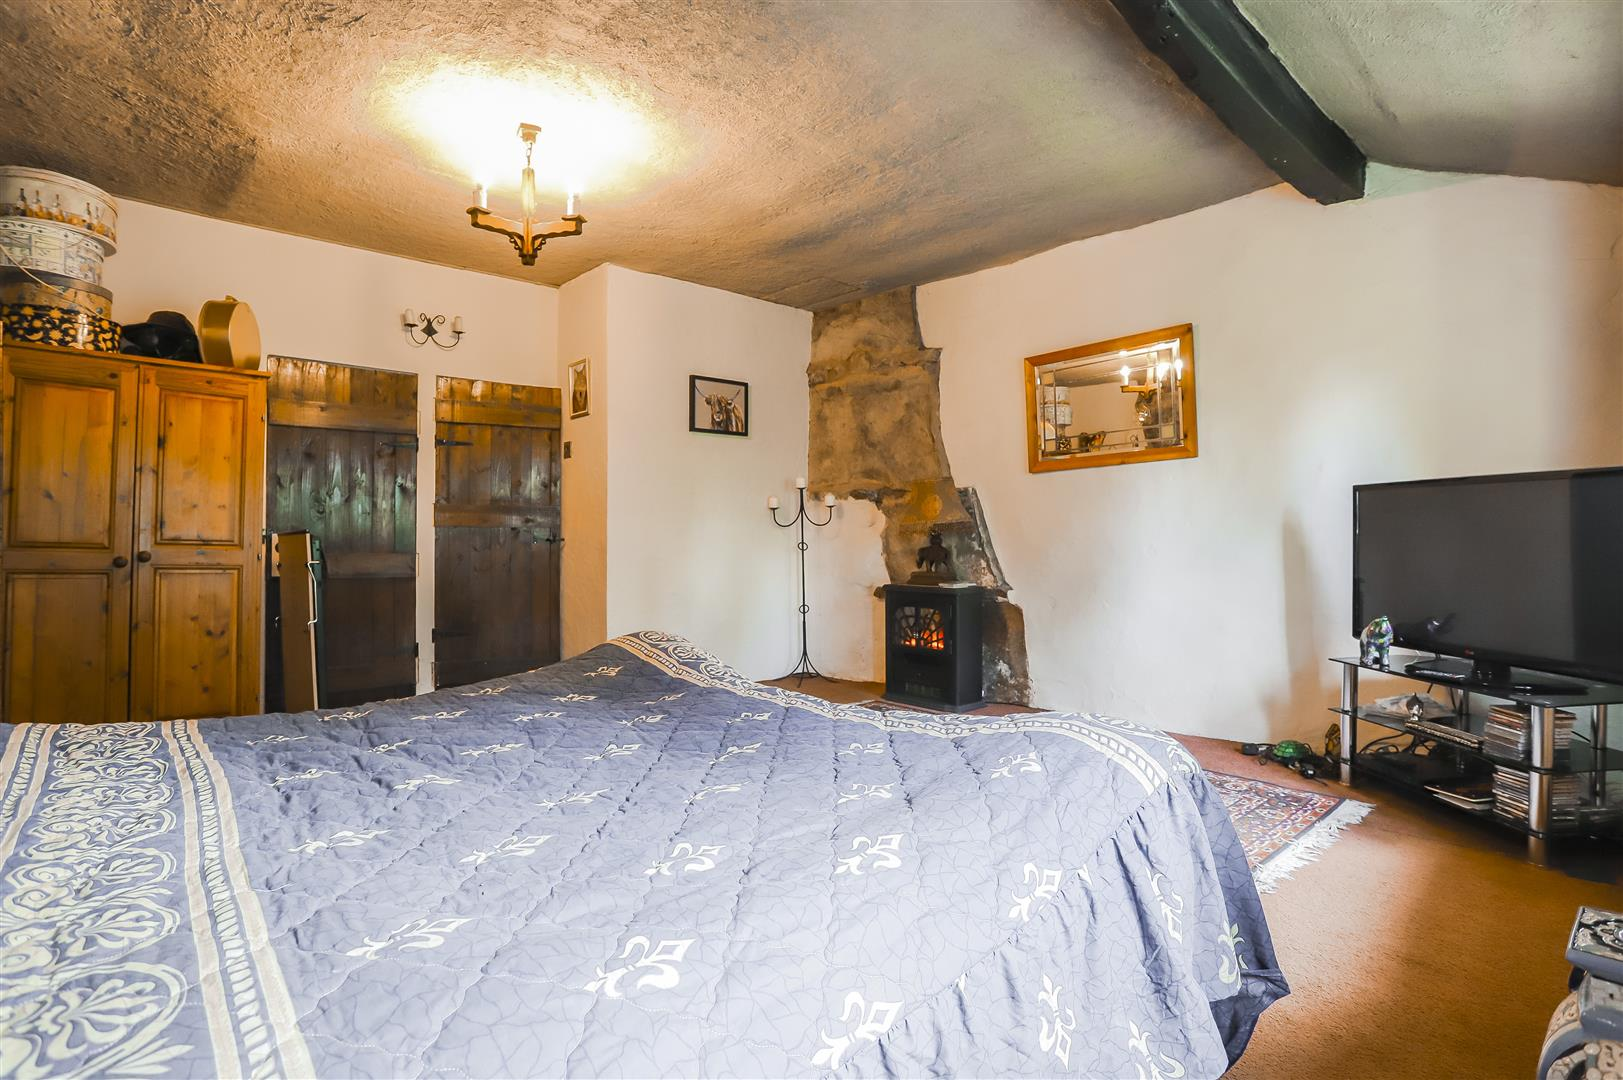 3 Bedroom House For Sale - Image 72